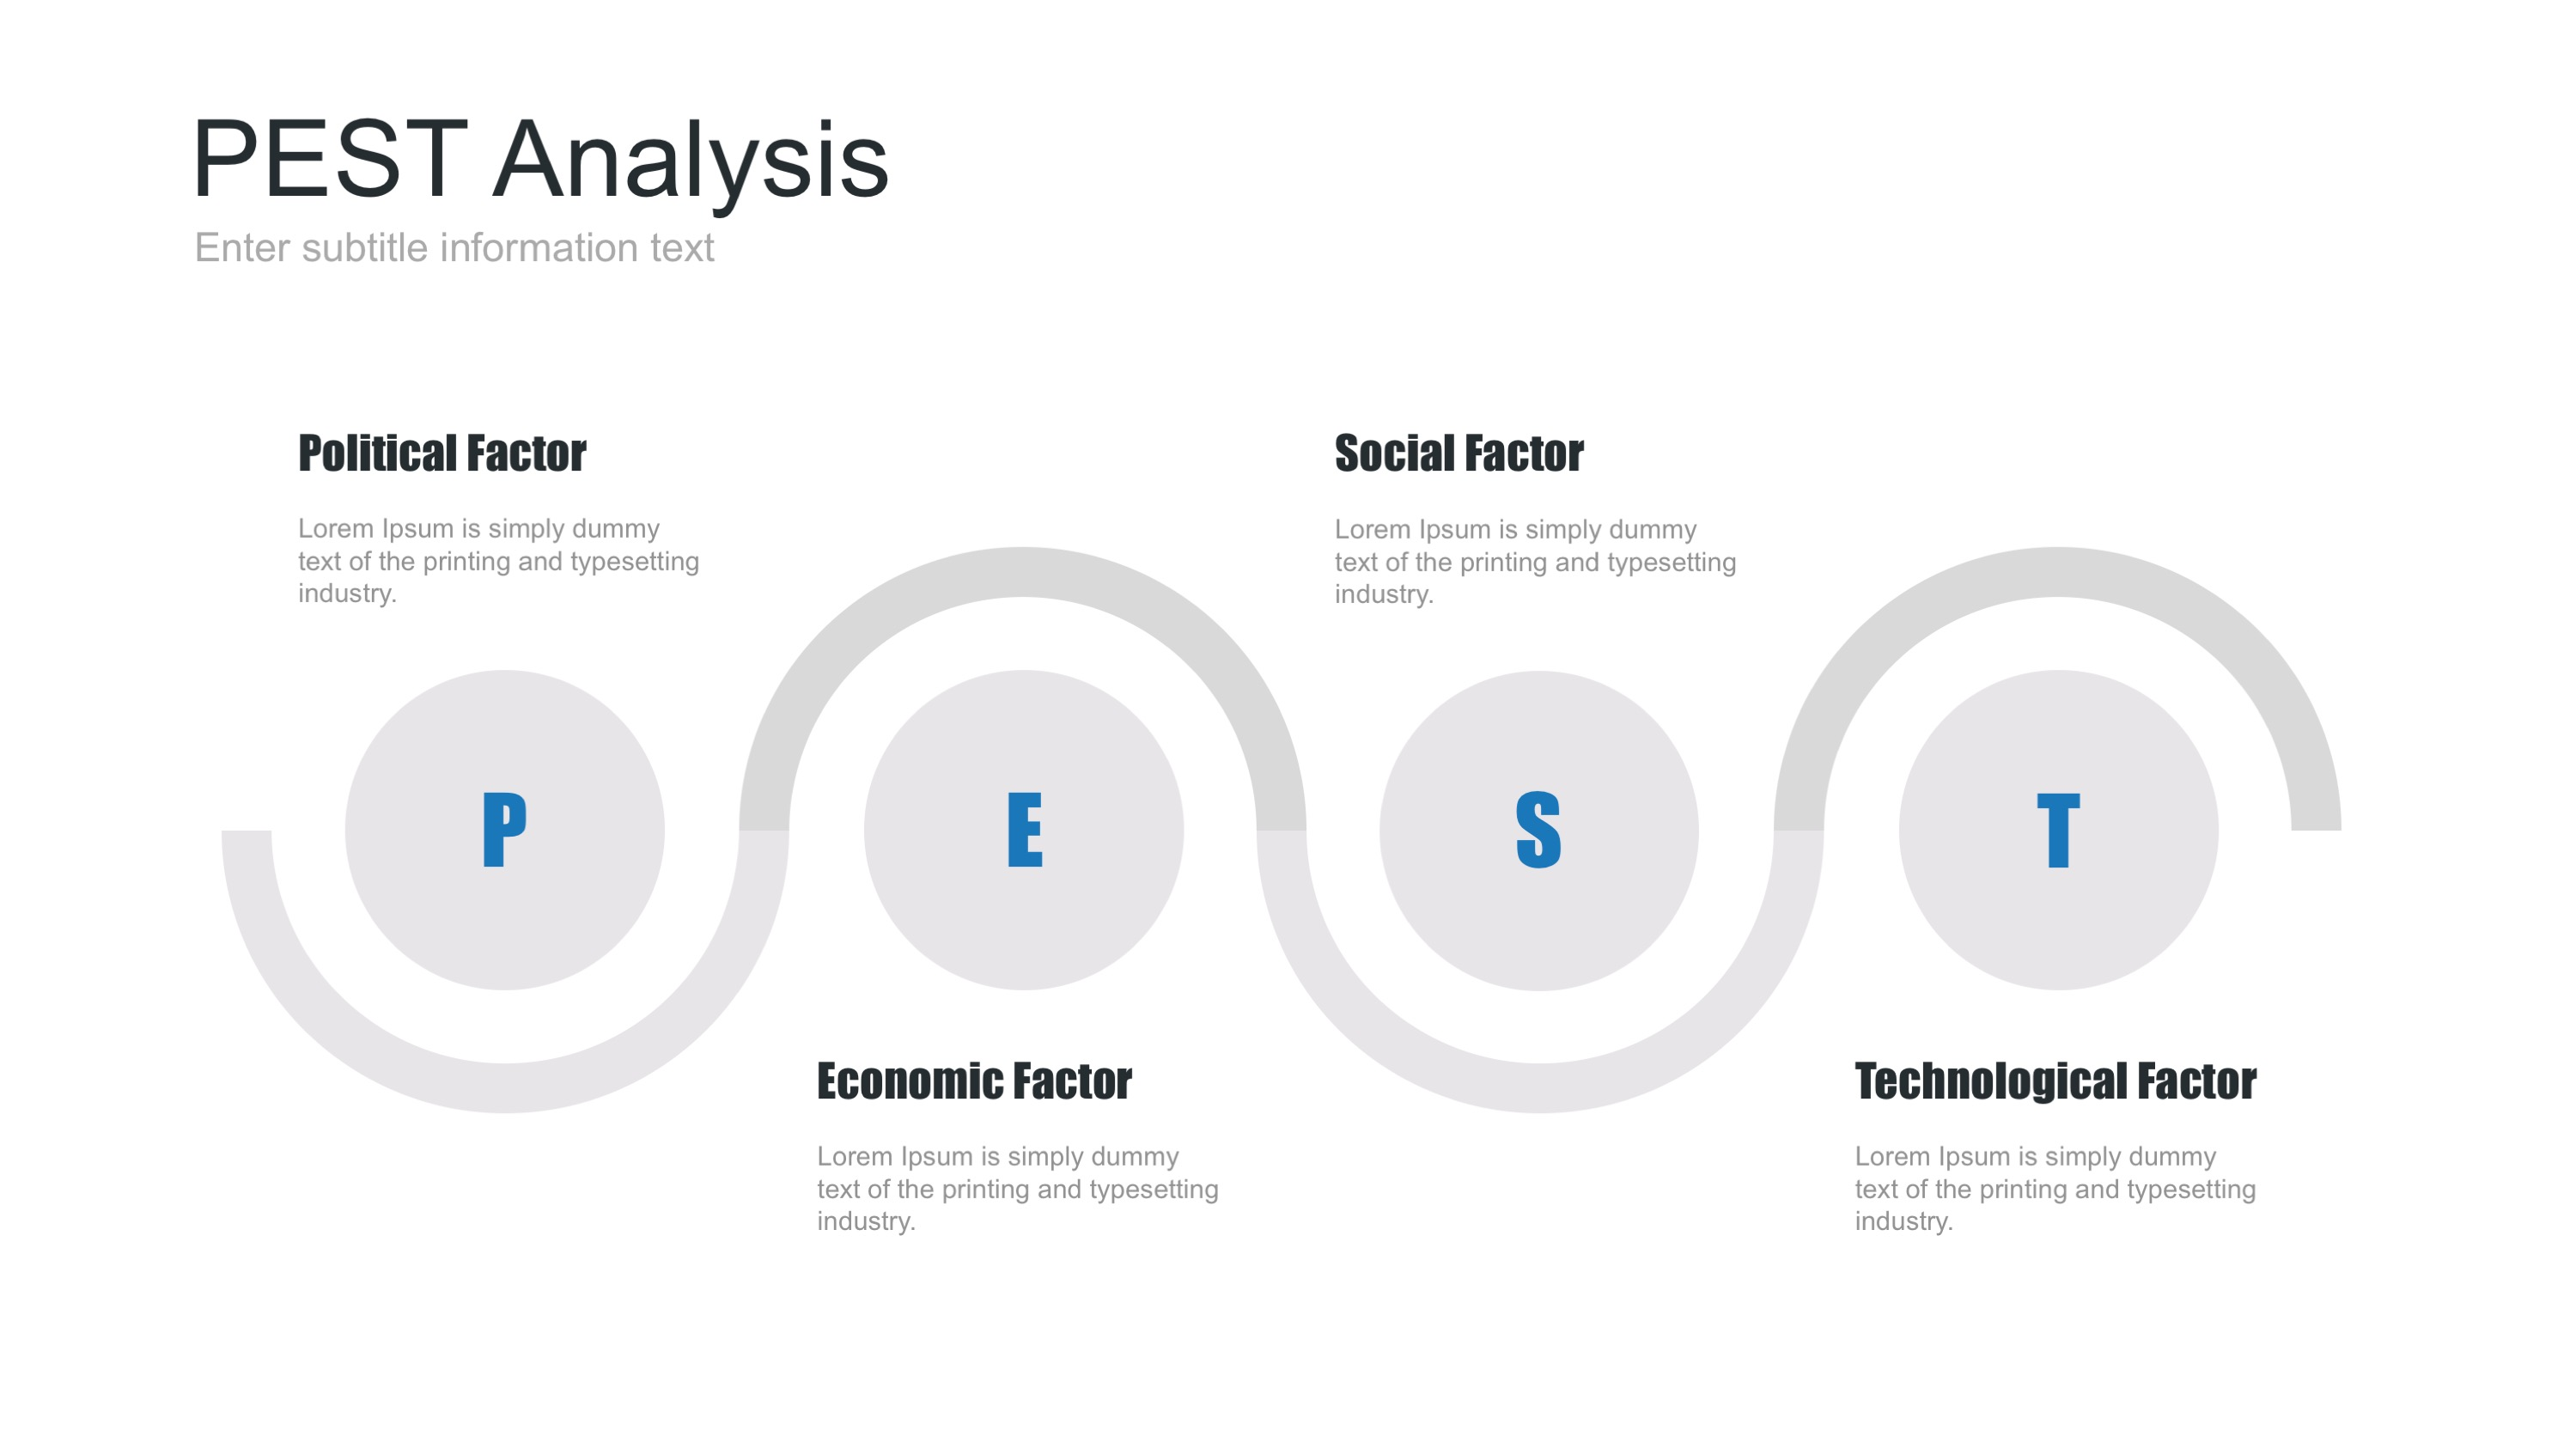 pest analysis buyvip Pest or pestle analysis helps you understand your business environment, by  looking at political, economic, socio-cultural, and technological factors.